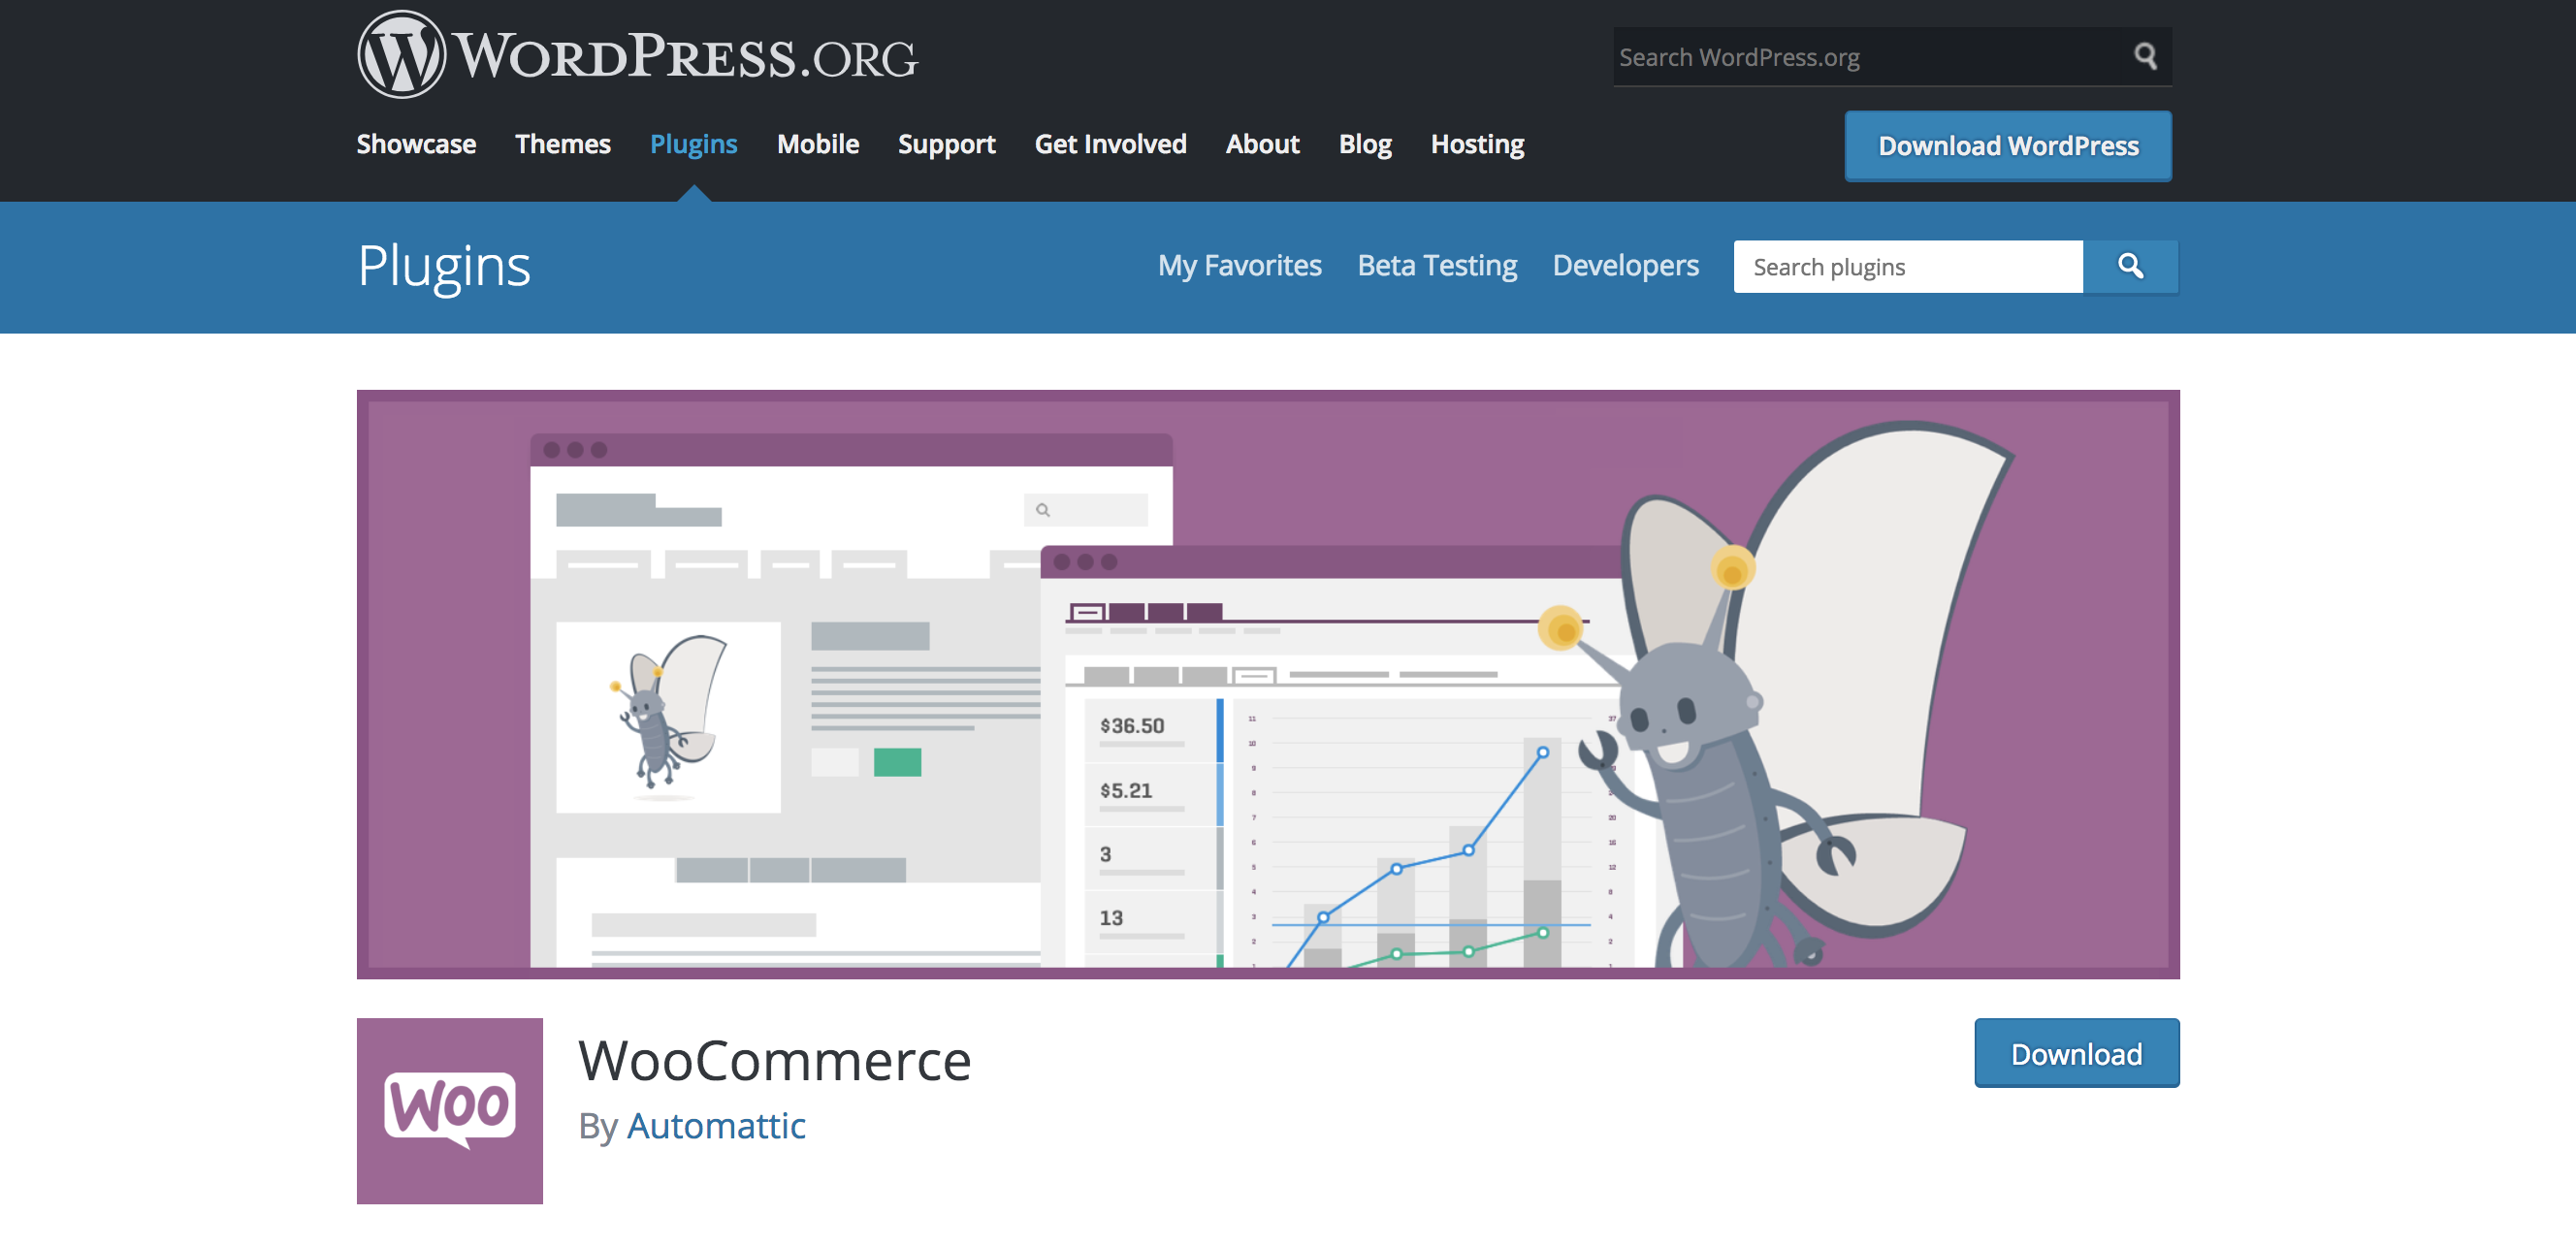 An introduction to WordPress and WooCommerce